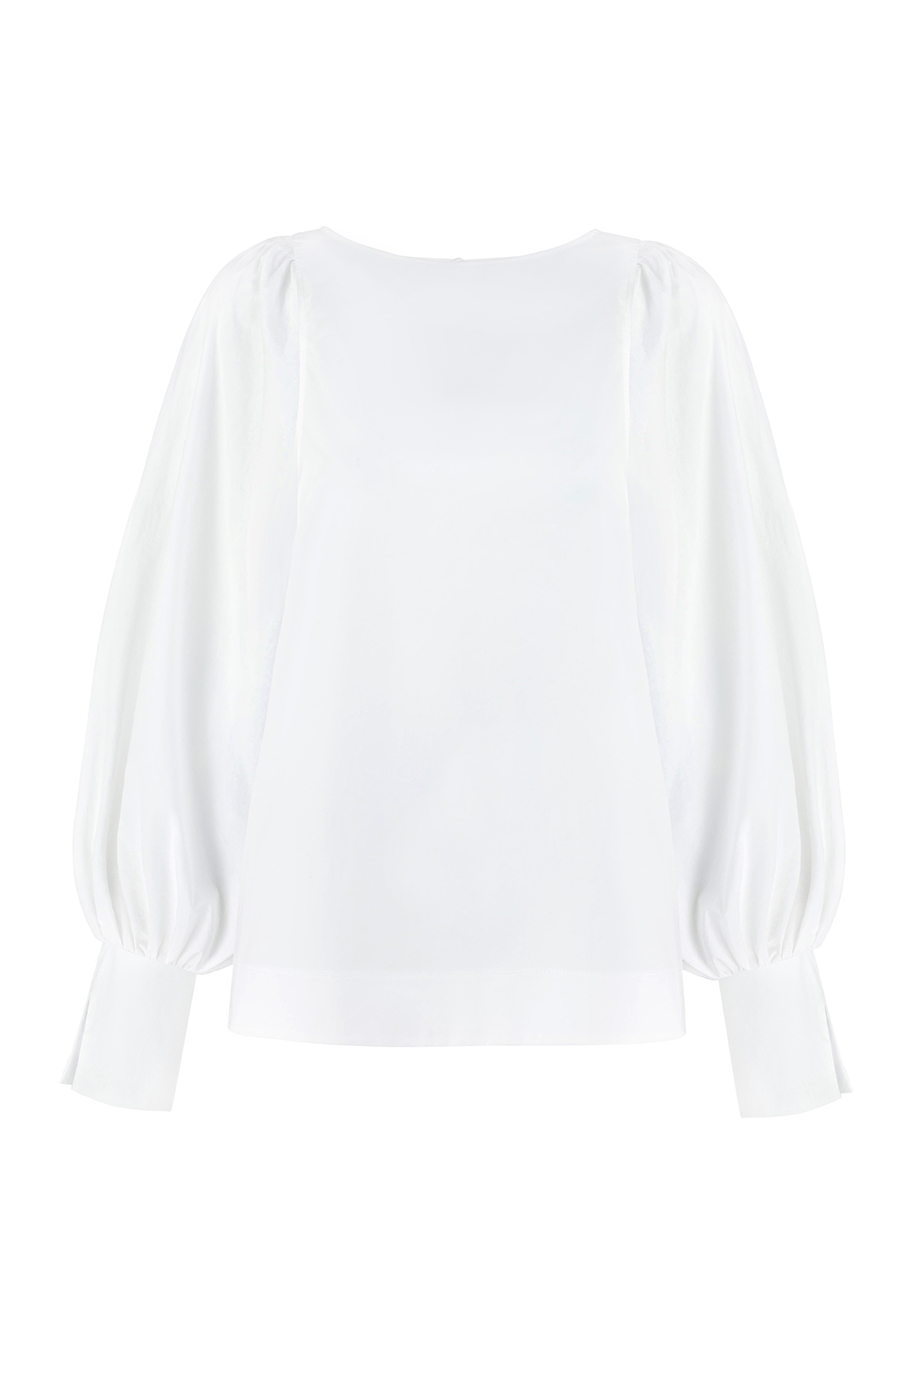 Aida Shirt - White by Monica Nera on curated-crowd.com